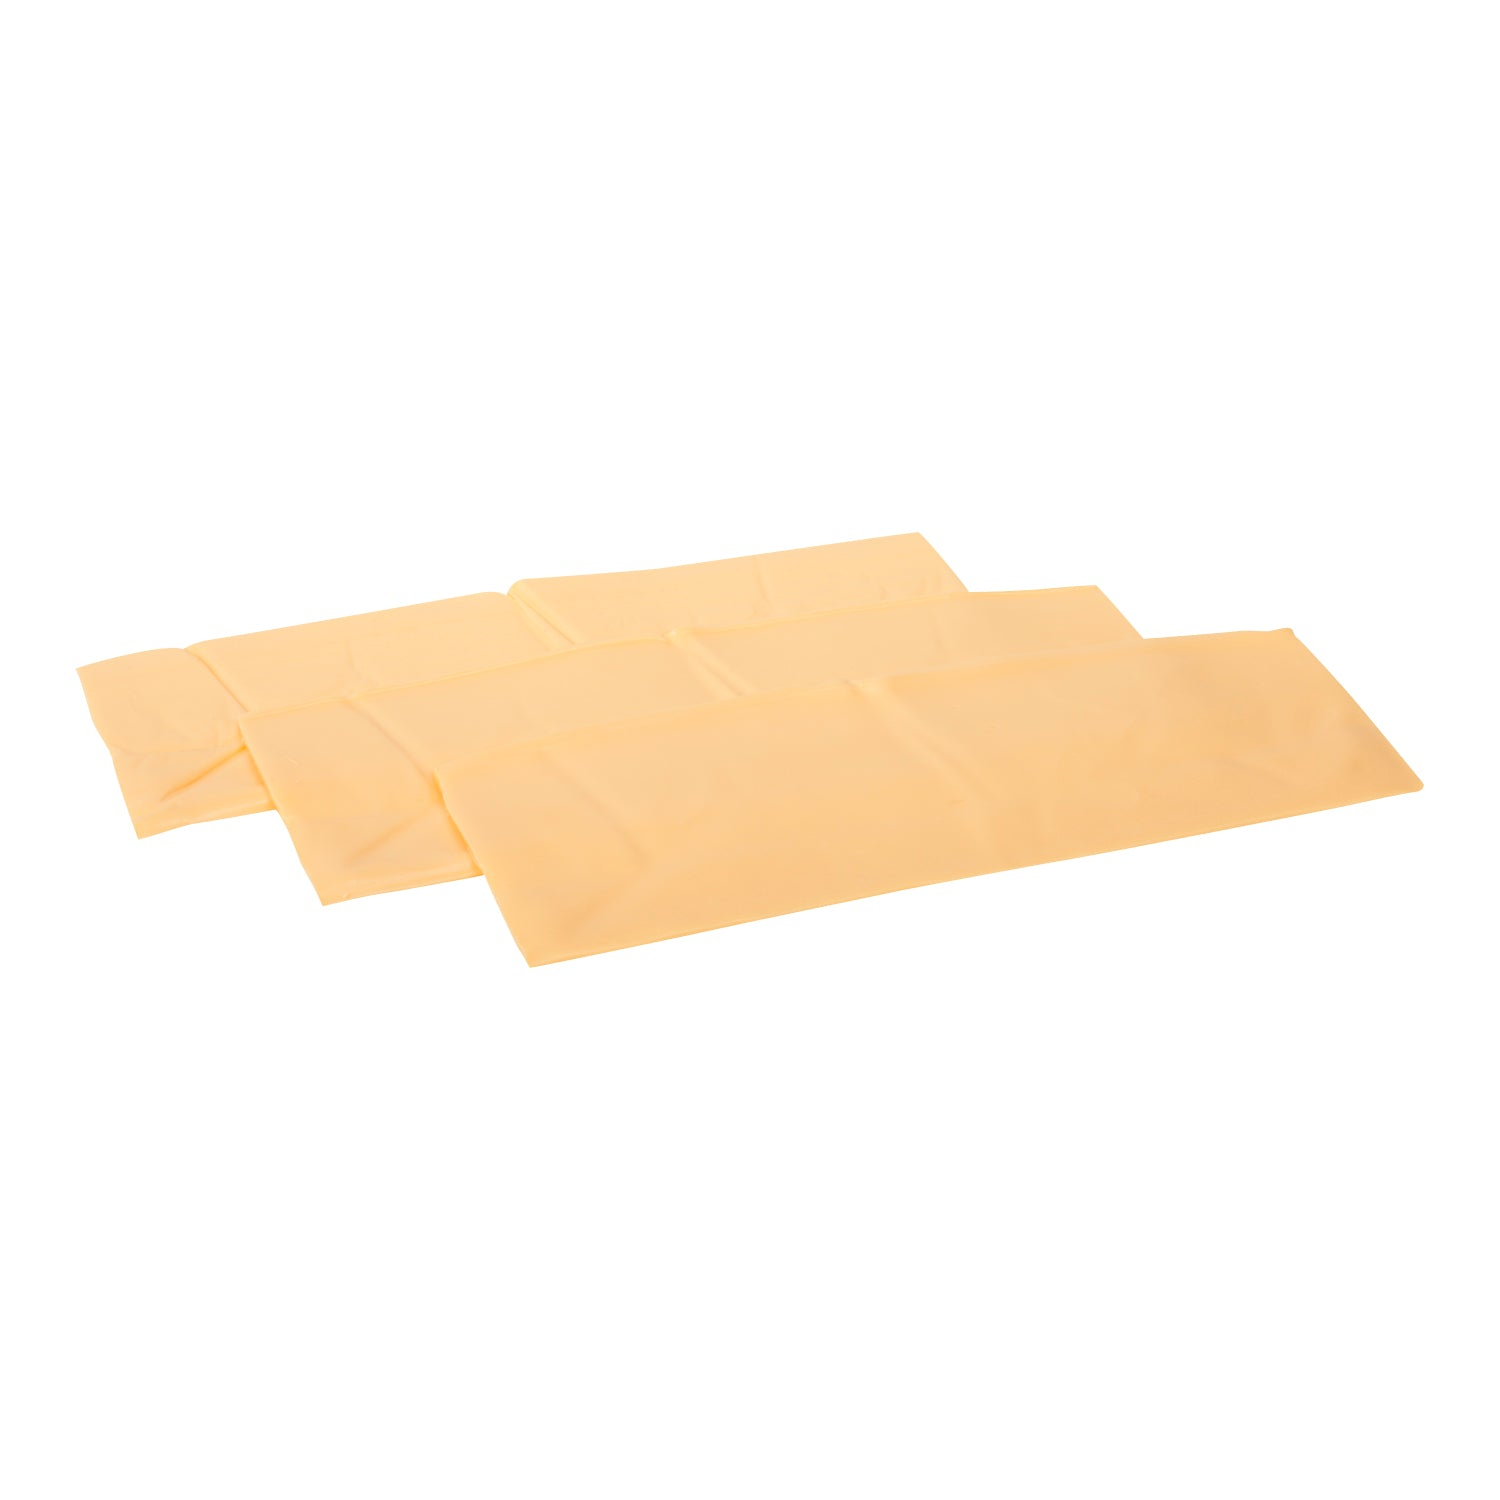 Sysco Block & Barrel Sliced Processed Cheese 2 kg - 2 Pack [$23.50/kg]